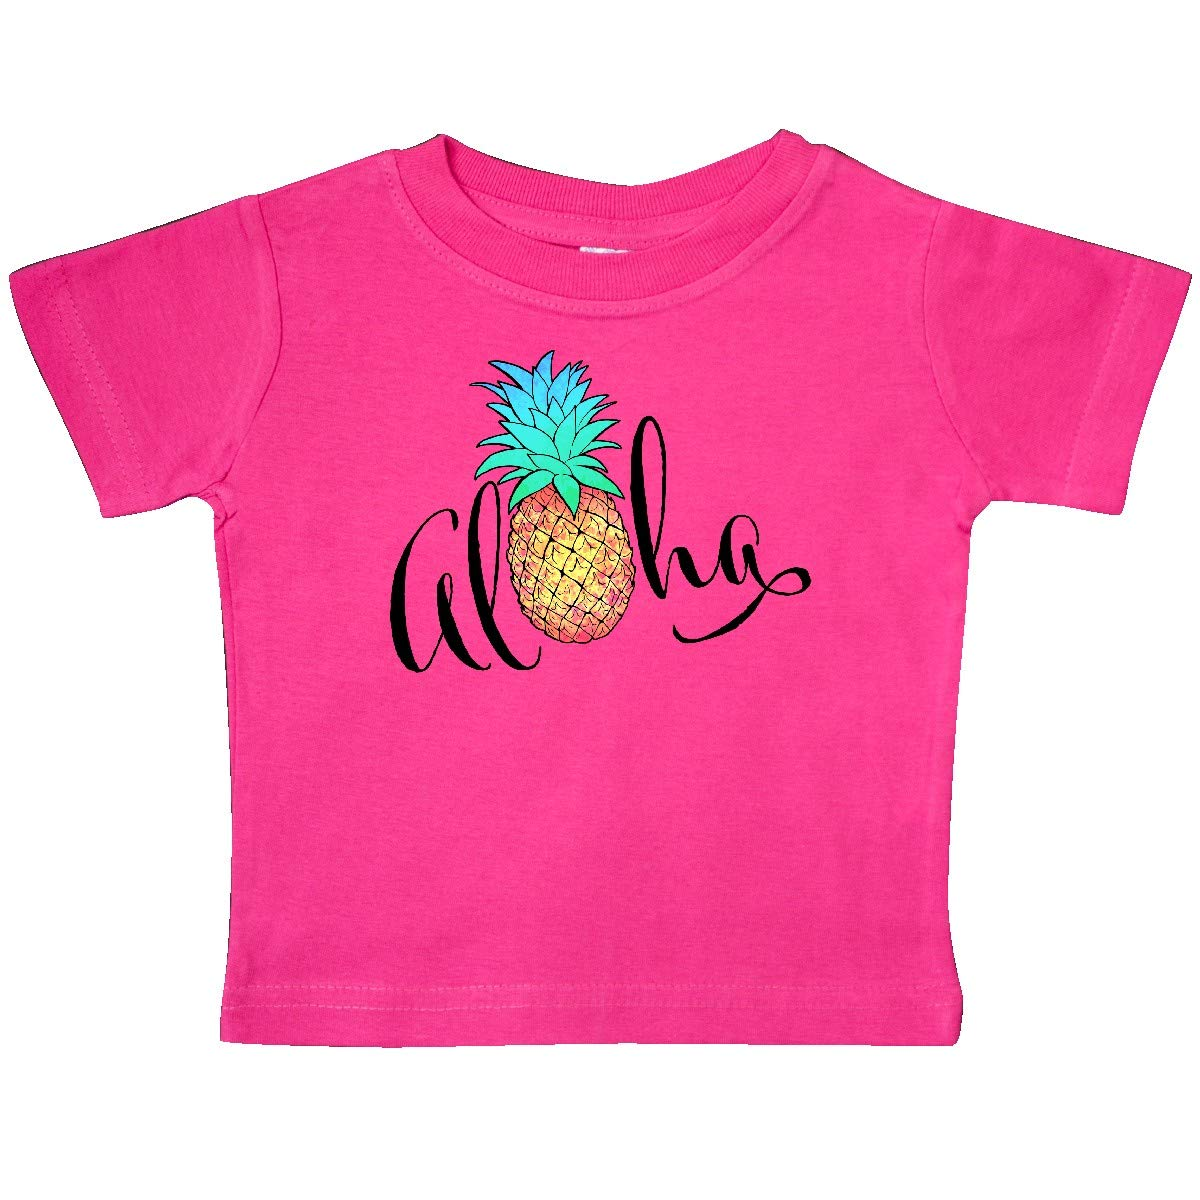 in Cursive with Pineapple Rainbow Colors Baby T-Shirt inktastic Aloha